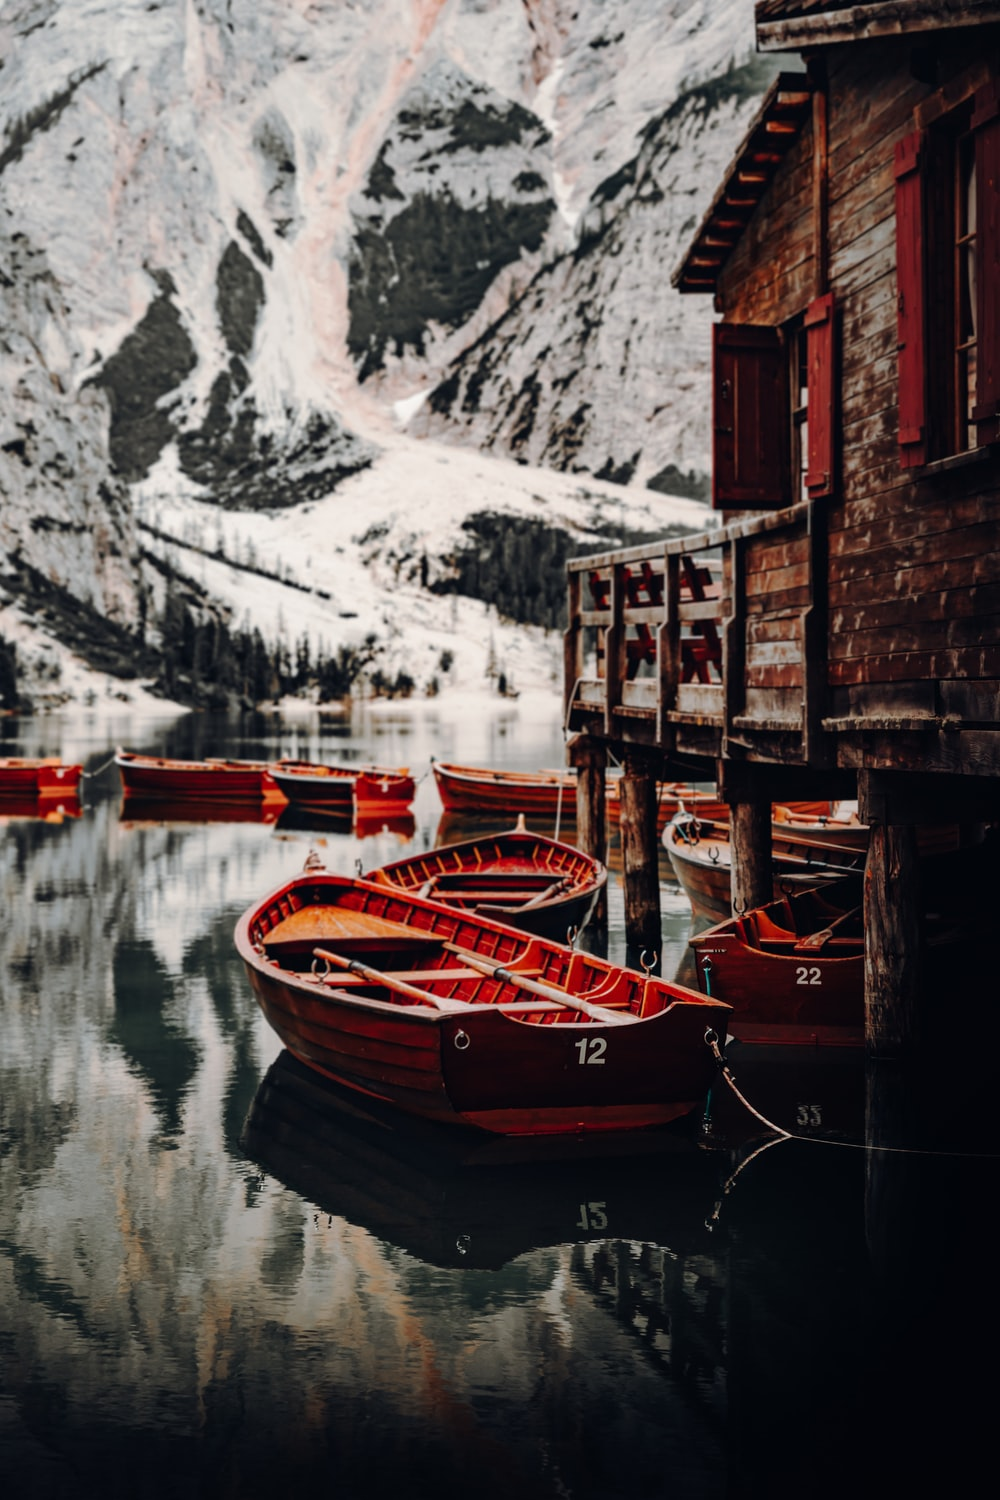 brown wooden boat on water near snow covered mountain during daytime